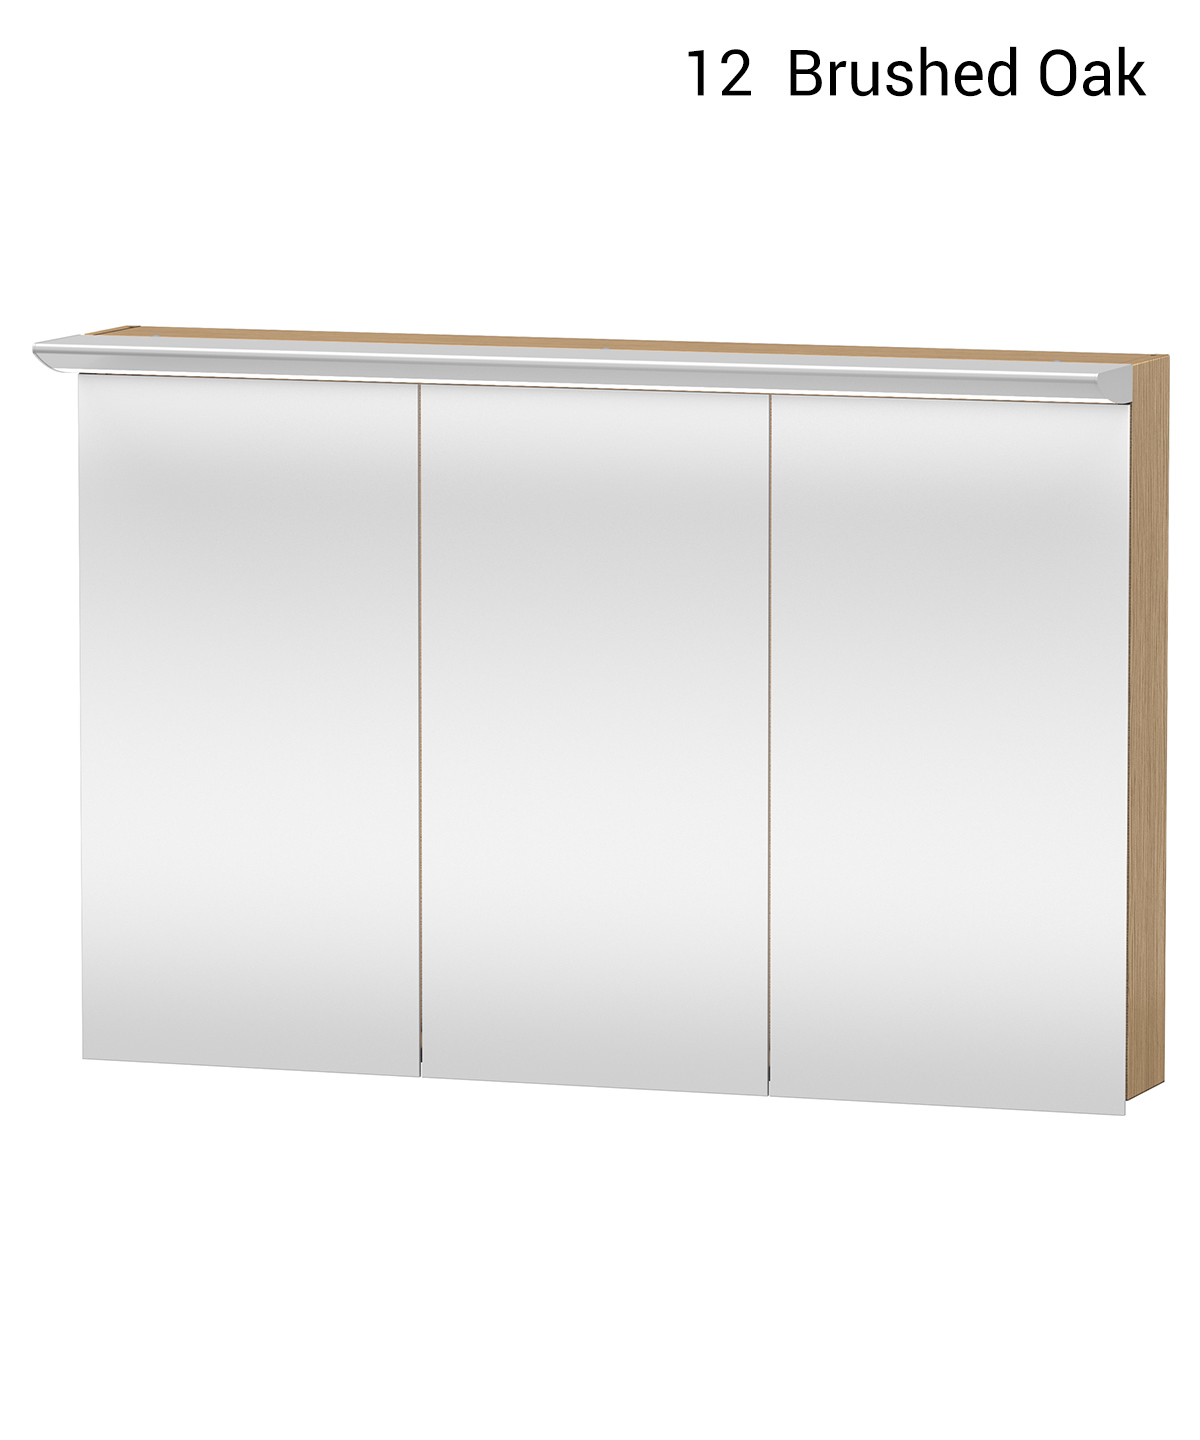 Duravit darling new 1200 x 800mm 3 doors mirror cabinet for Bathroom cabinets 80cm wide